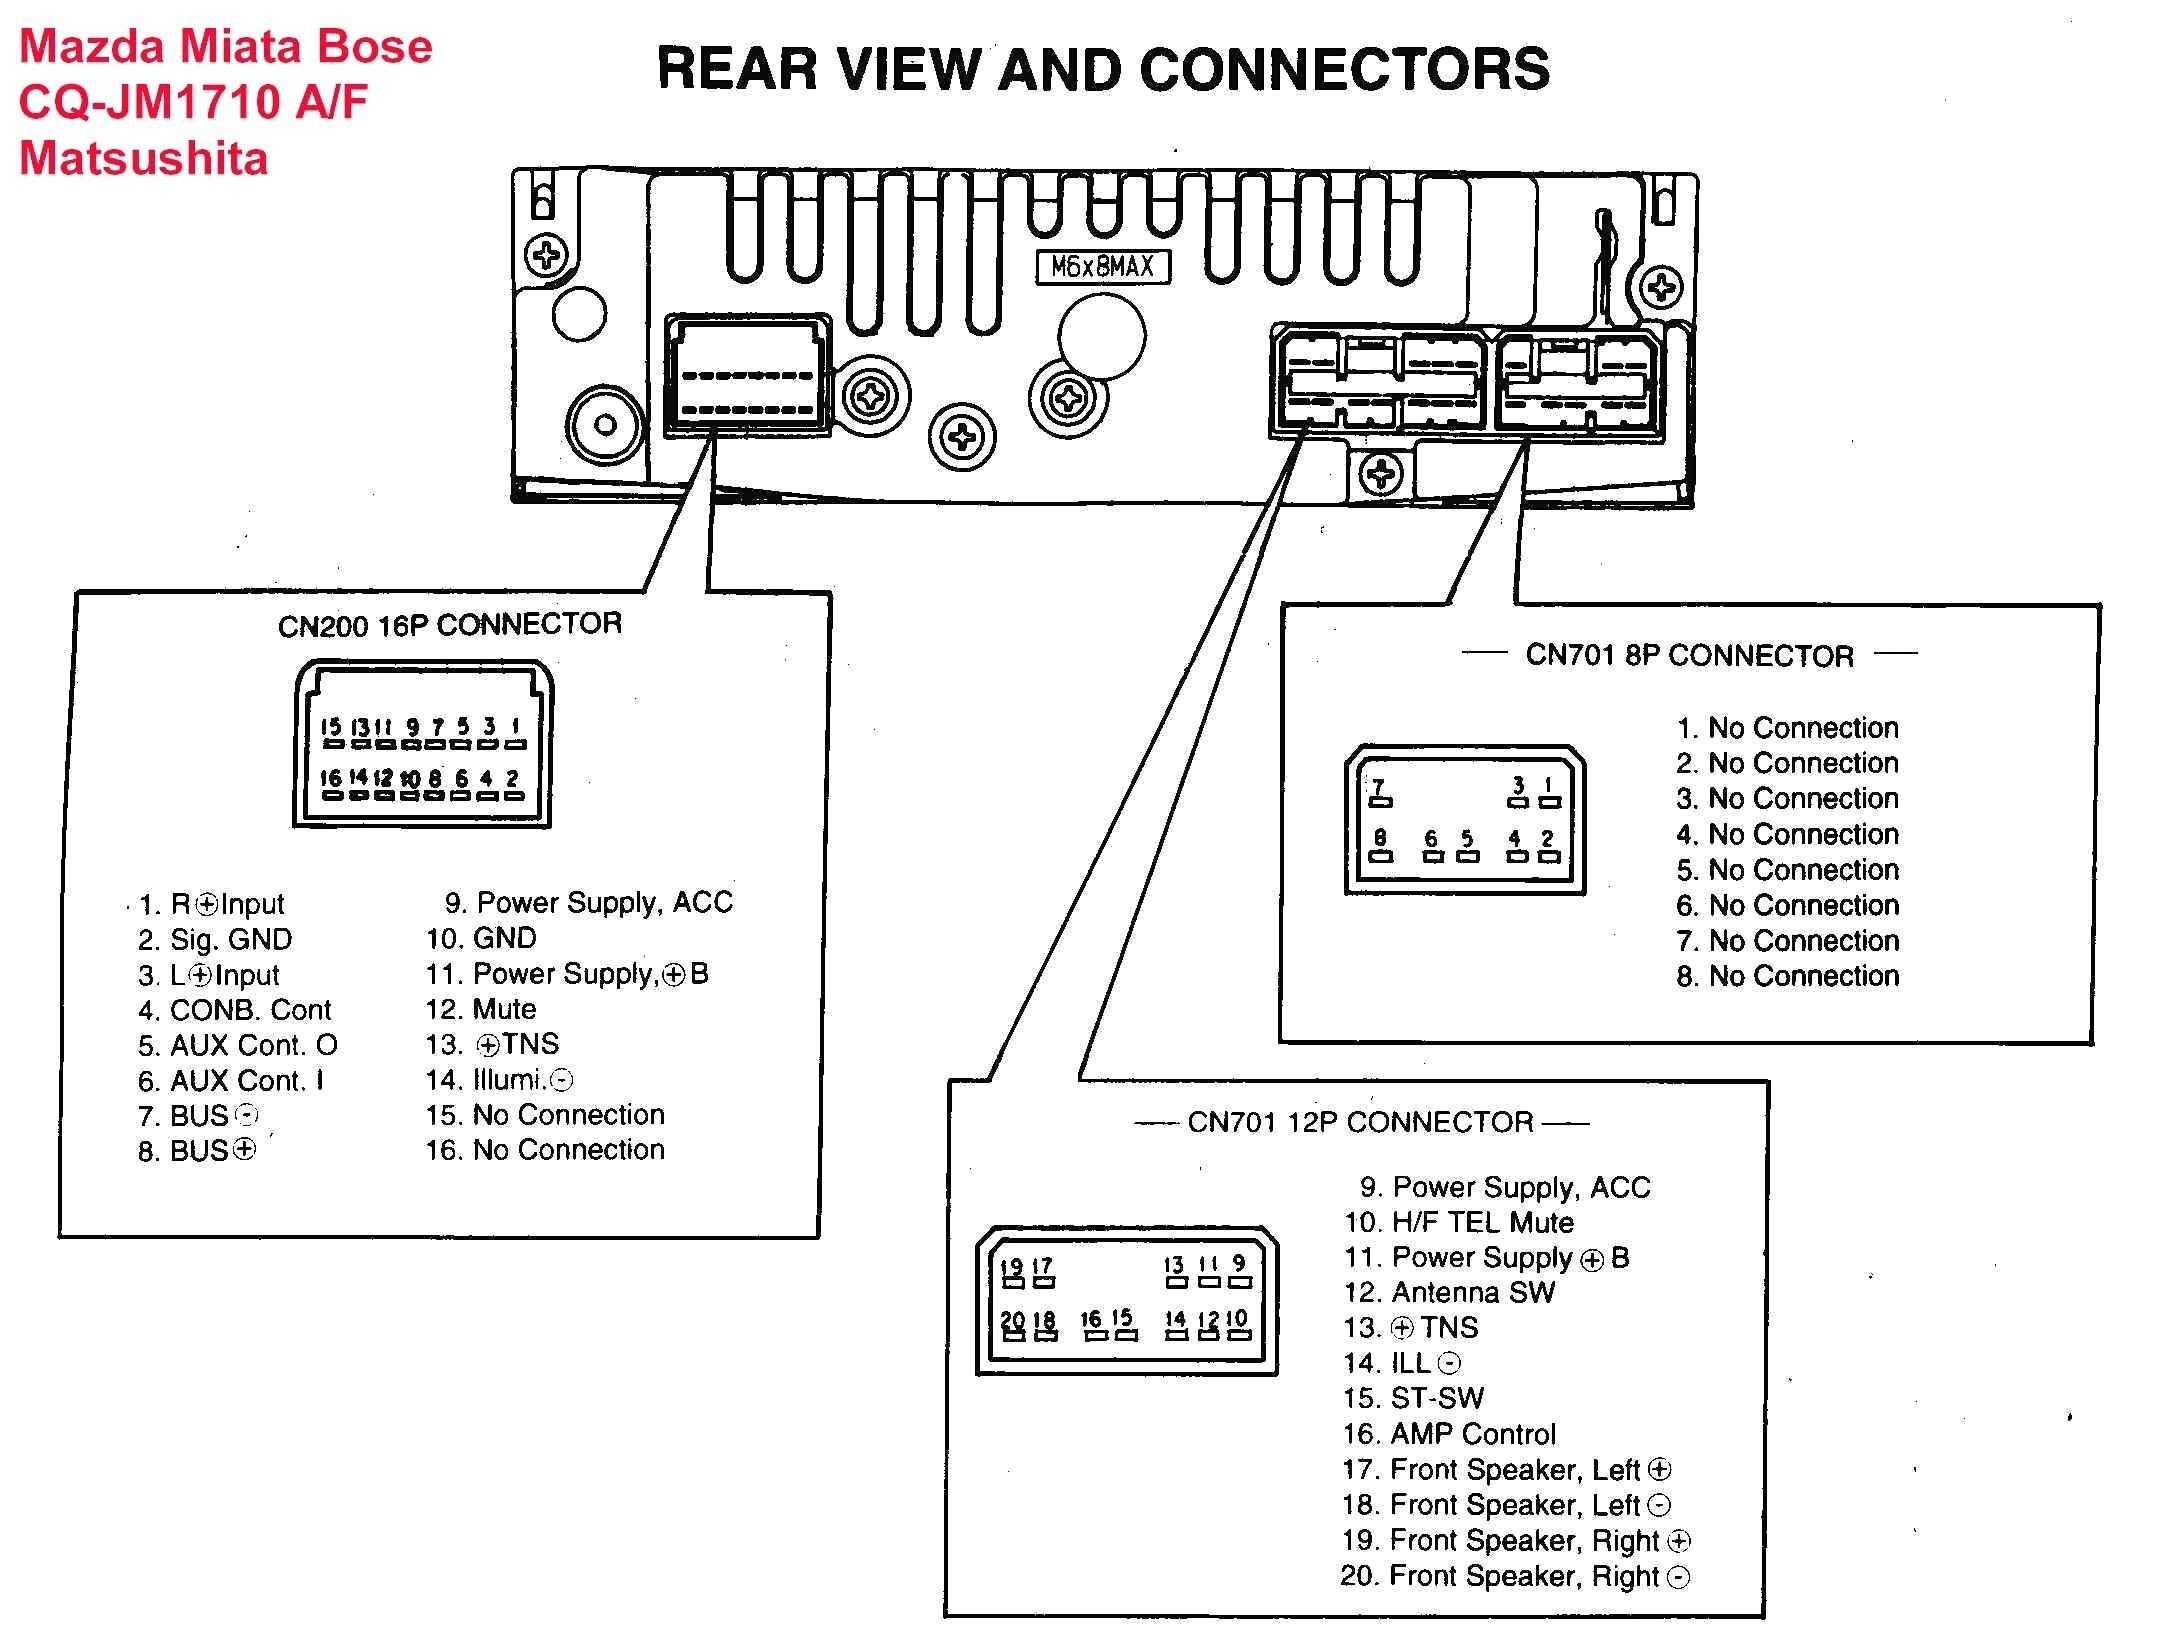 Wiring Diagram Sony Car Stereo In 2020 Sony Car Stereo Car Stereo Wire